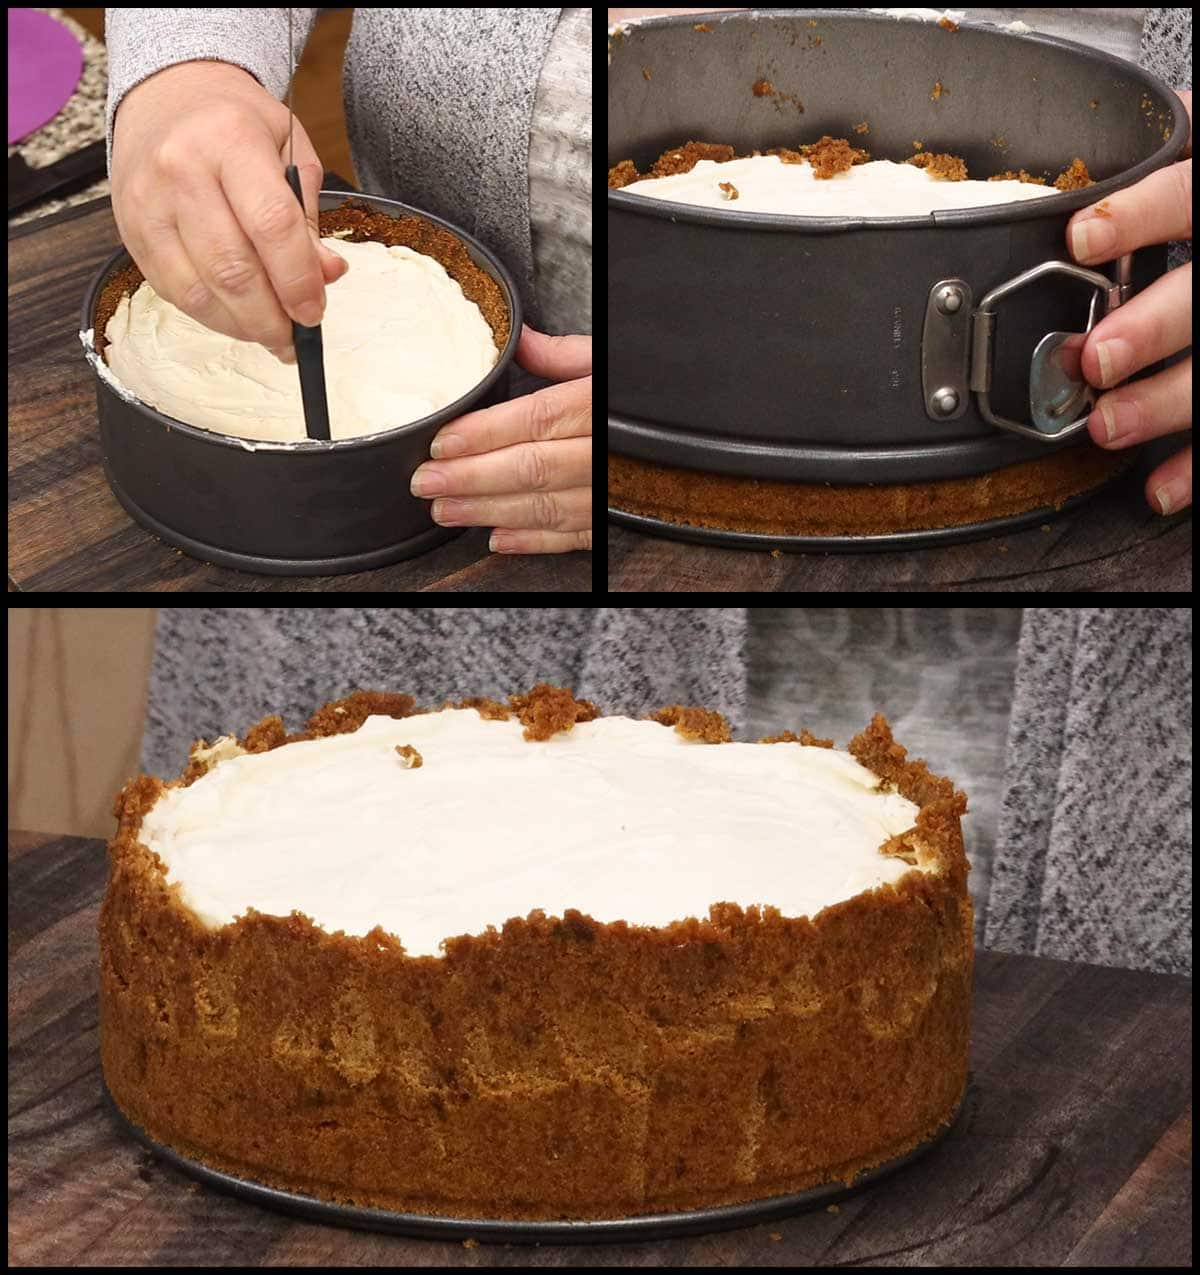 running a cake tester along the sides of the cheesecake and removing the sides of the springform pan